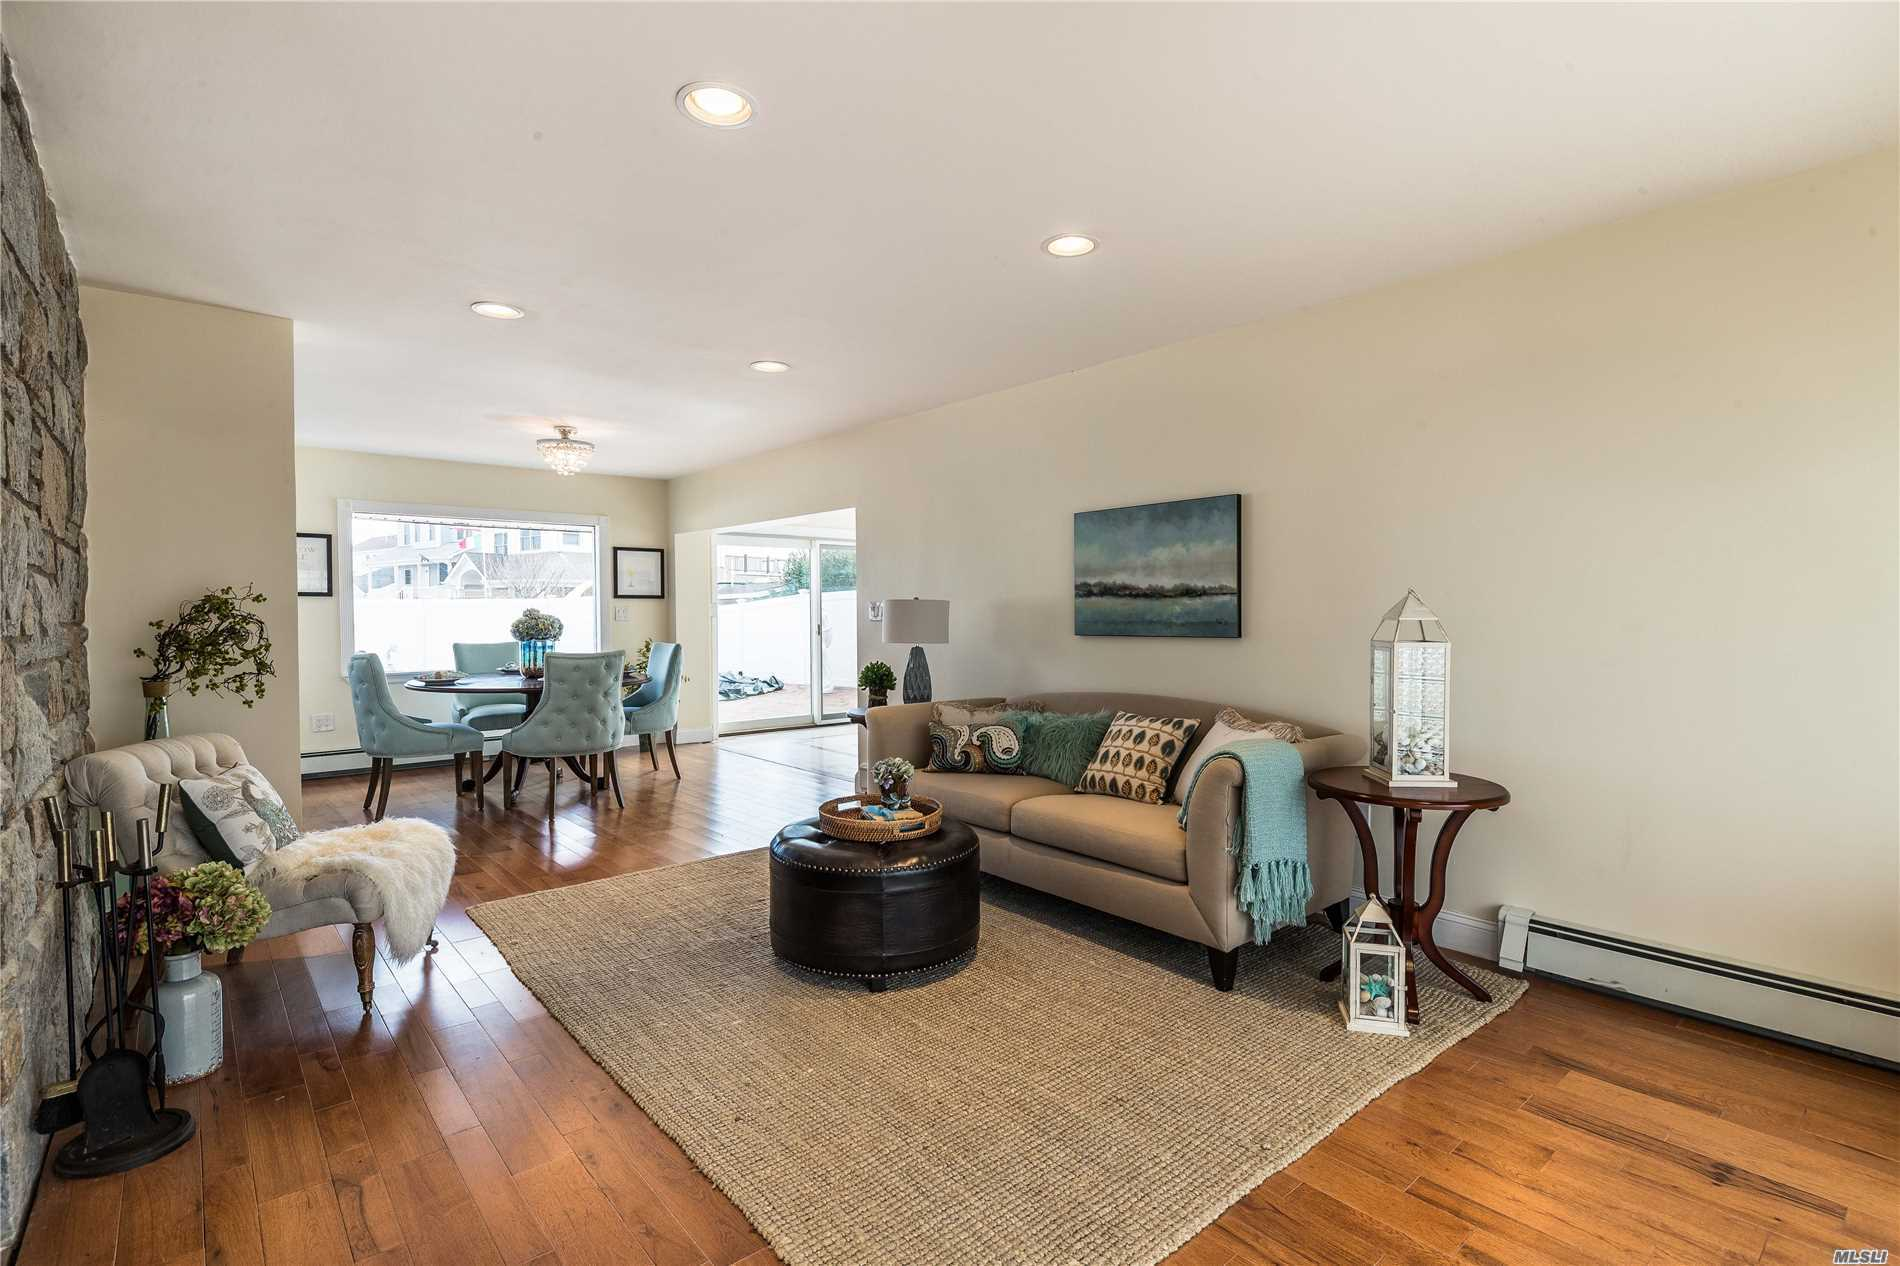 Brand New Granite Kitchen With Stainless Appliances. All New Baths, Heating And Electric. Open Floor Plan With Windows Overlooking The Vacation Style Backyard. Built In Pool And Private Dock With New Bulkhead On The Thixton Canal. A Short Boat Ride Out To The Hewlett Bay. 1 Mile To Lirr.